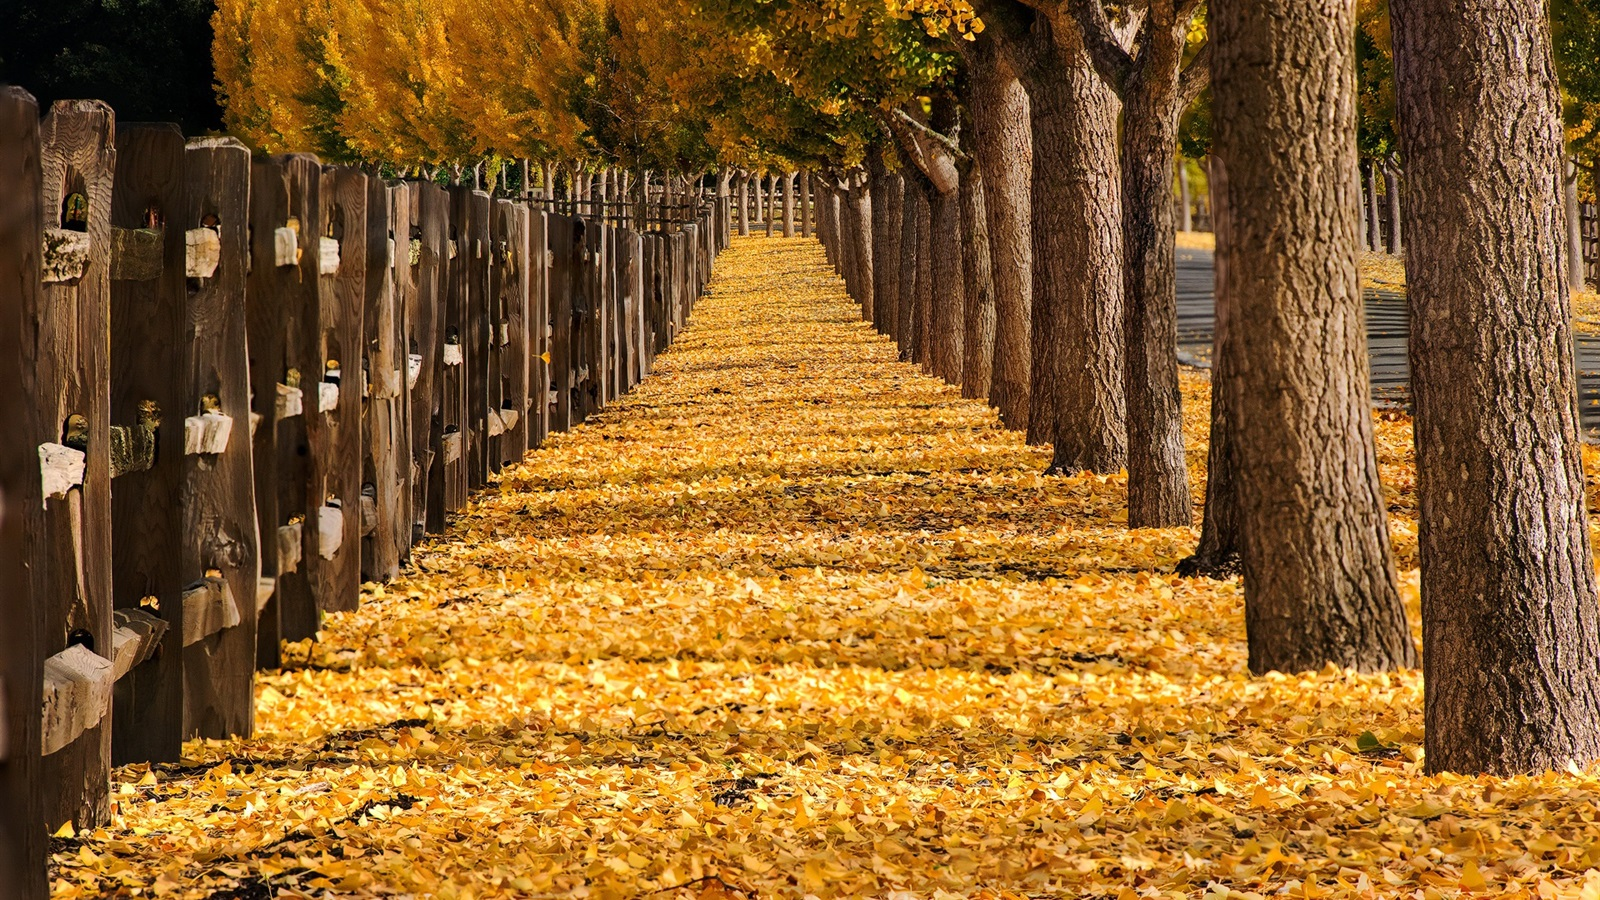 Wallpaper Trees Yellow Leaves Path Fence Park Autumn